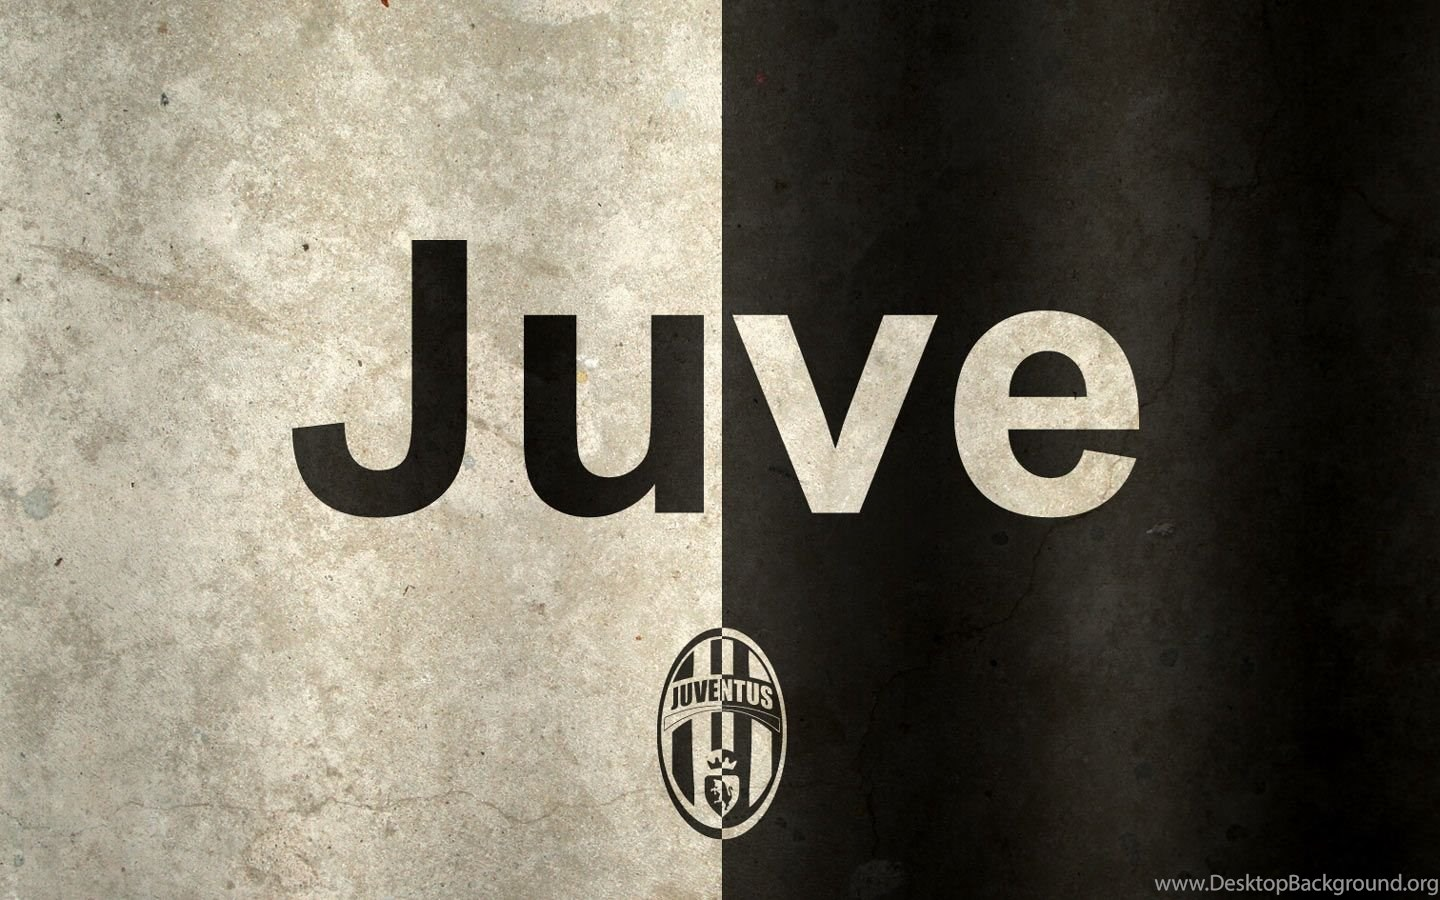 Juventus Wallpaper Best Full Logo Background Jpg Desktop Background